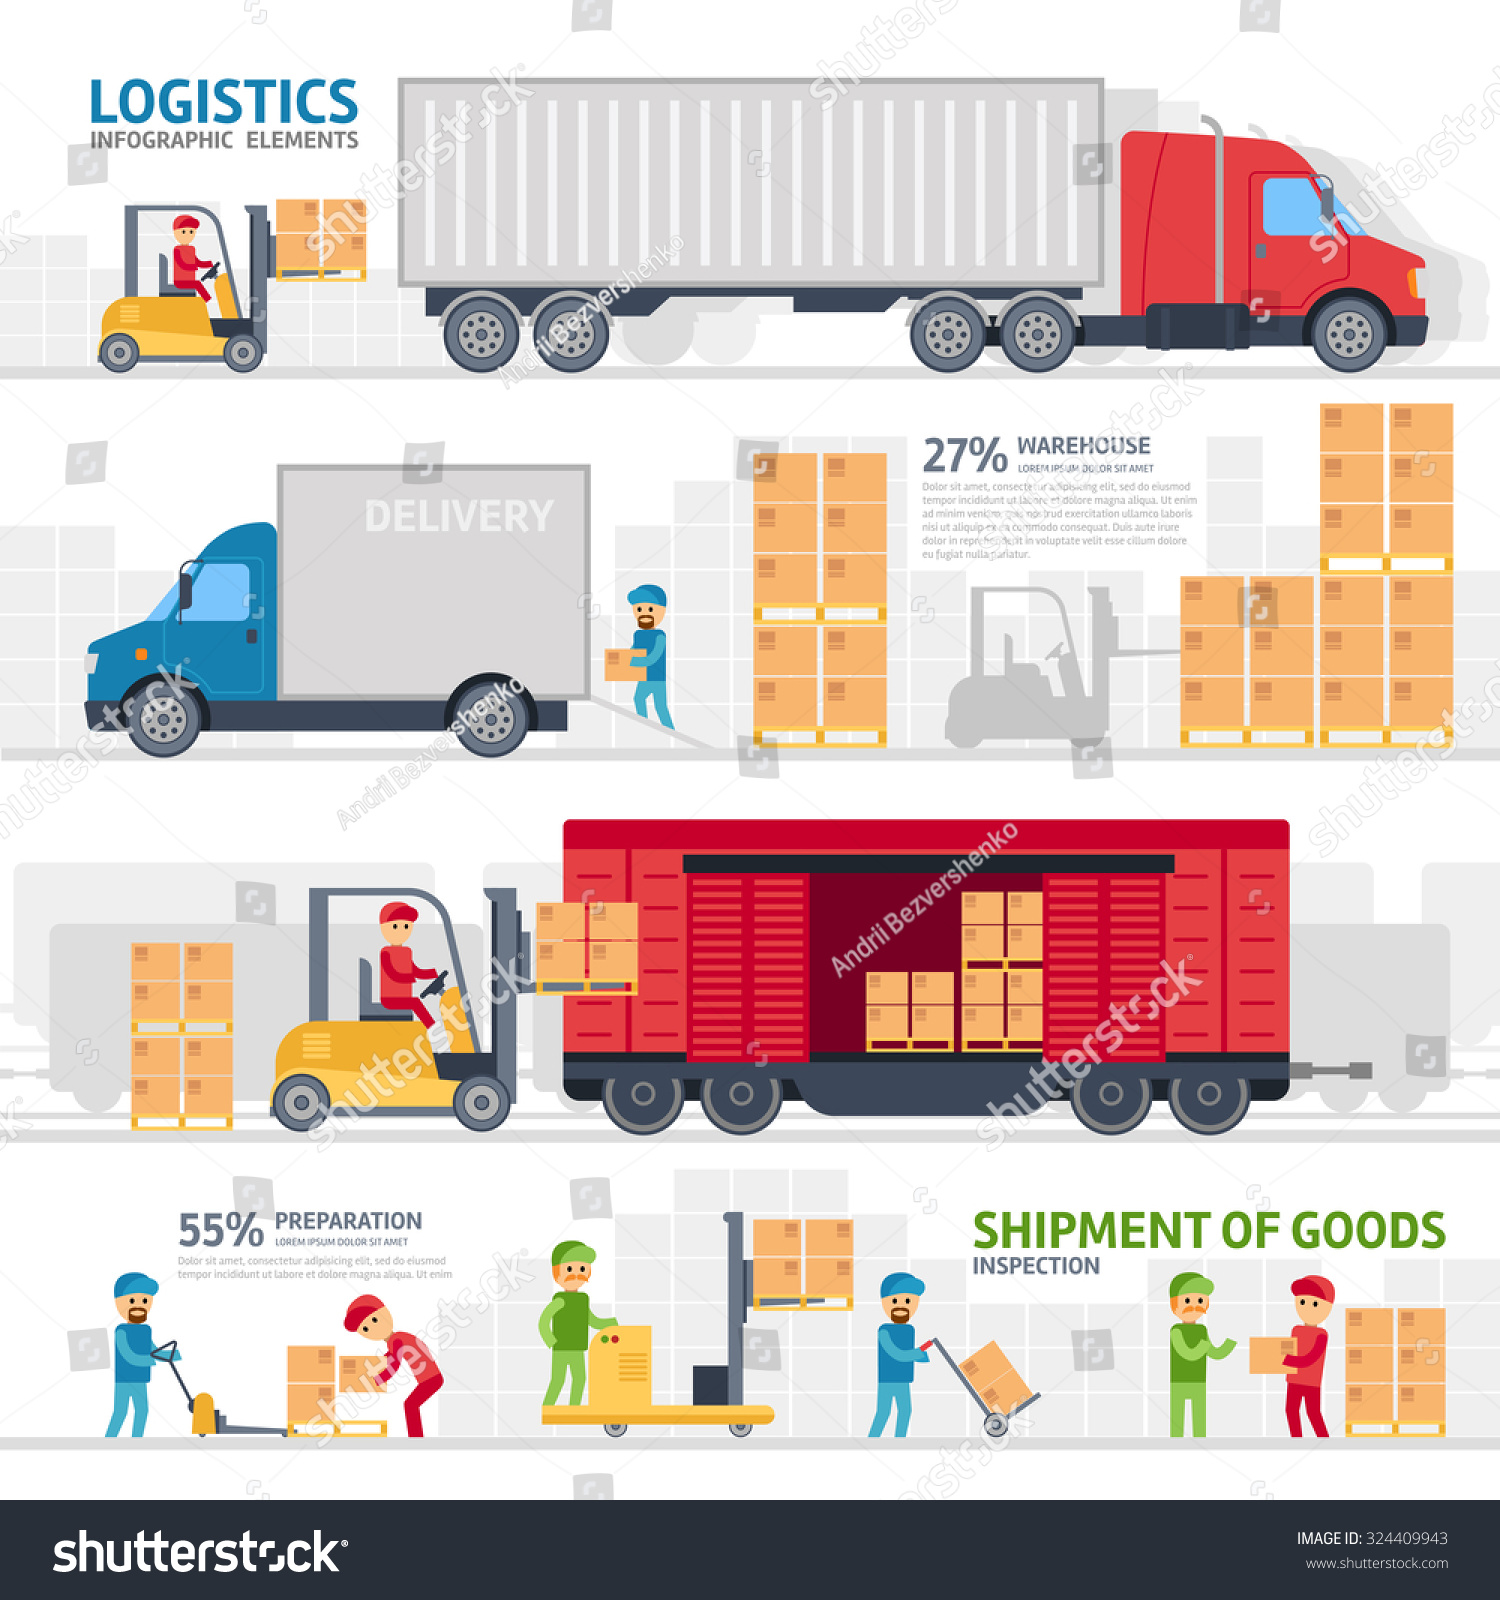 Shipping Delivery: Logistic Infographic Elements Set Transport Delivery Stock